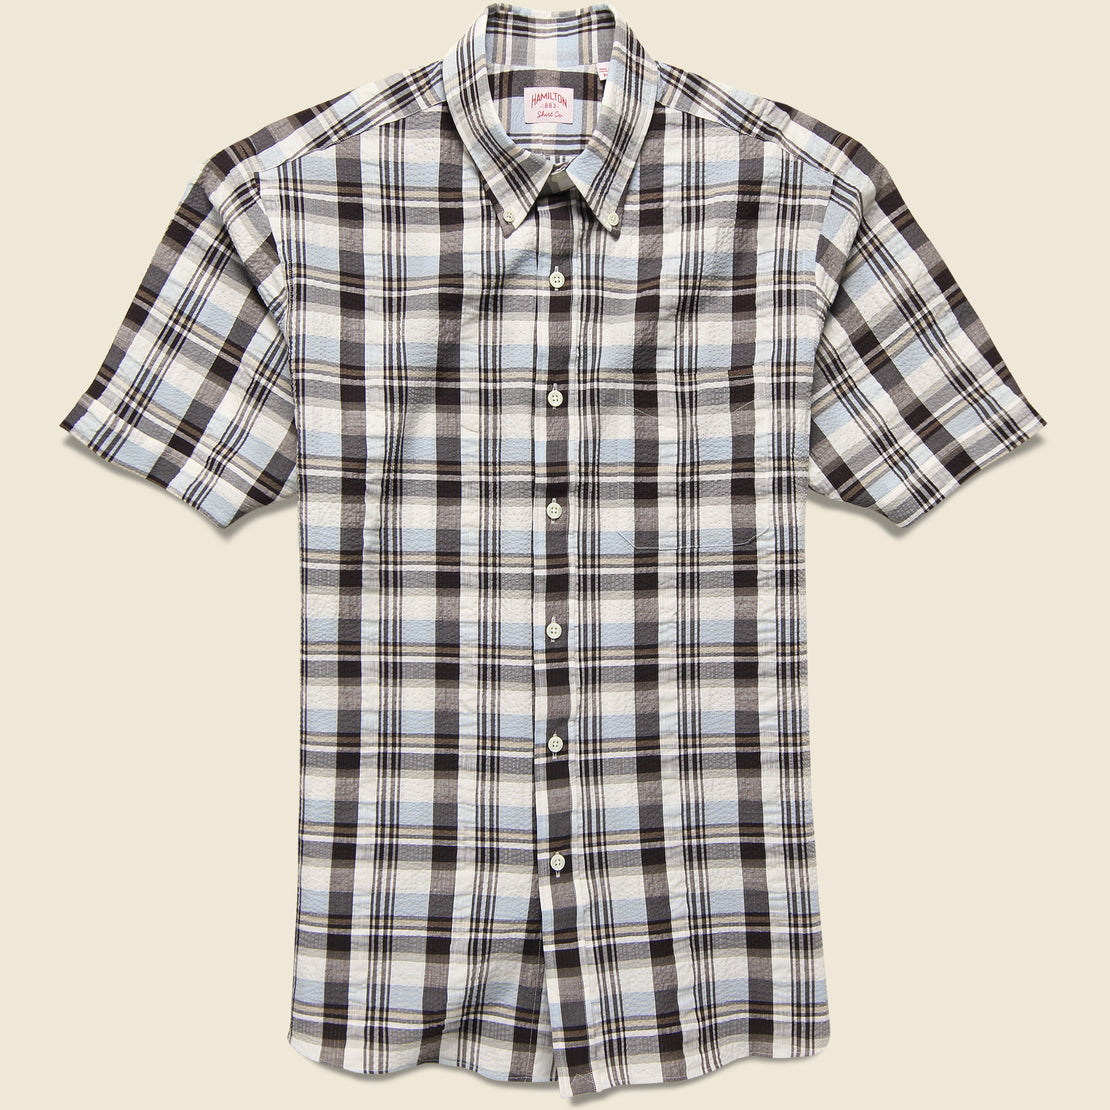 Hamilton Shirt Co. Plaid Seersucker Shirt - Brown/Grey